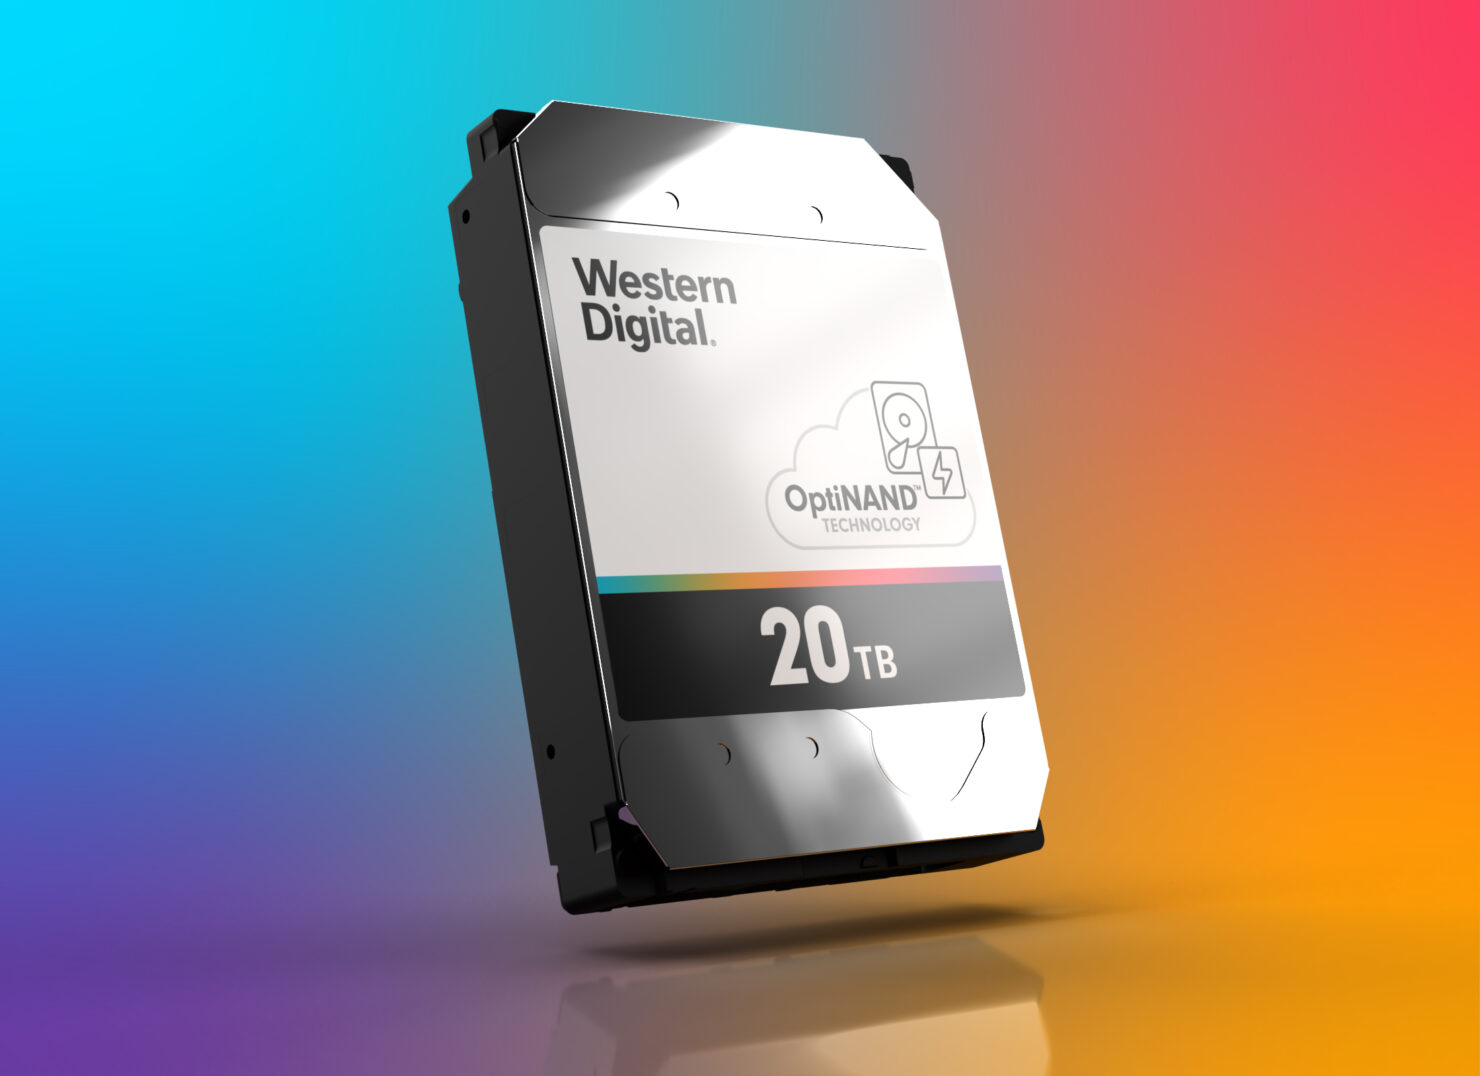 western-digital-launches-20-tb-mechanical-hard-drive-with-optinand-technology